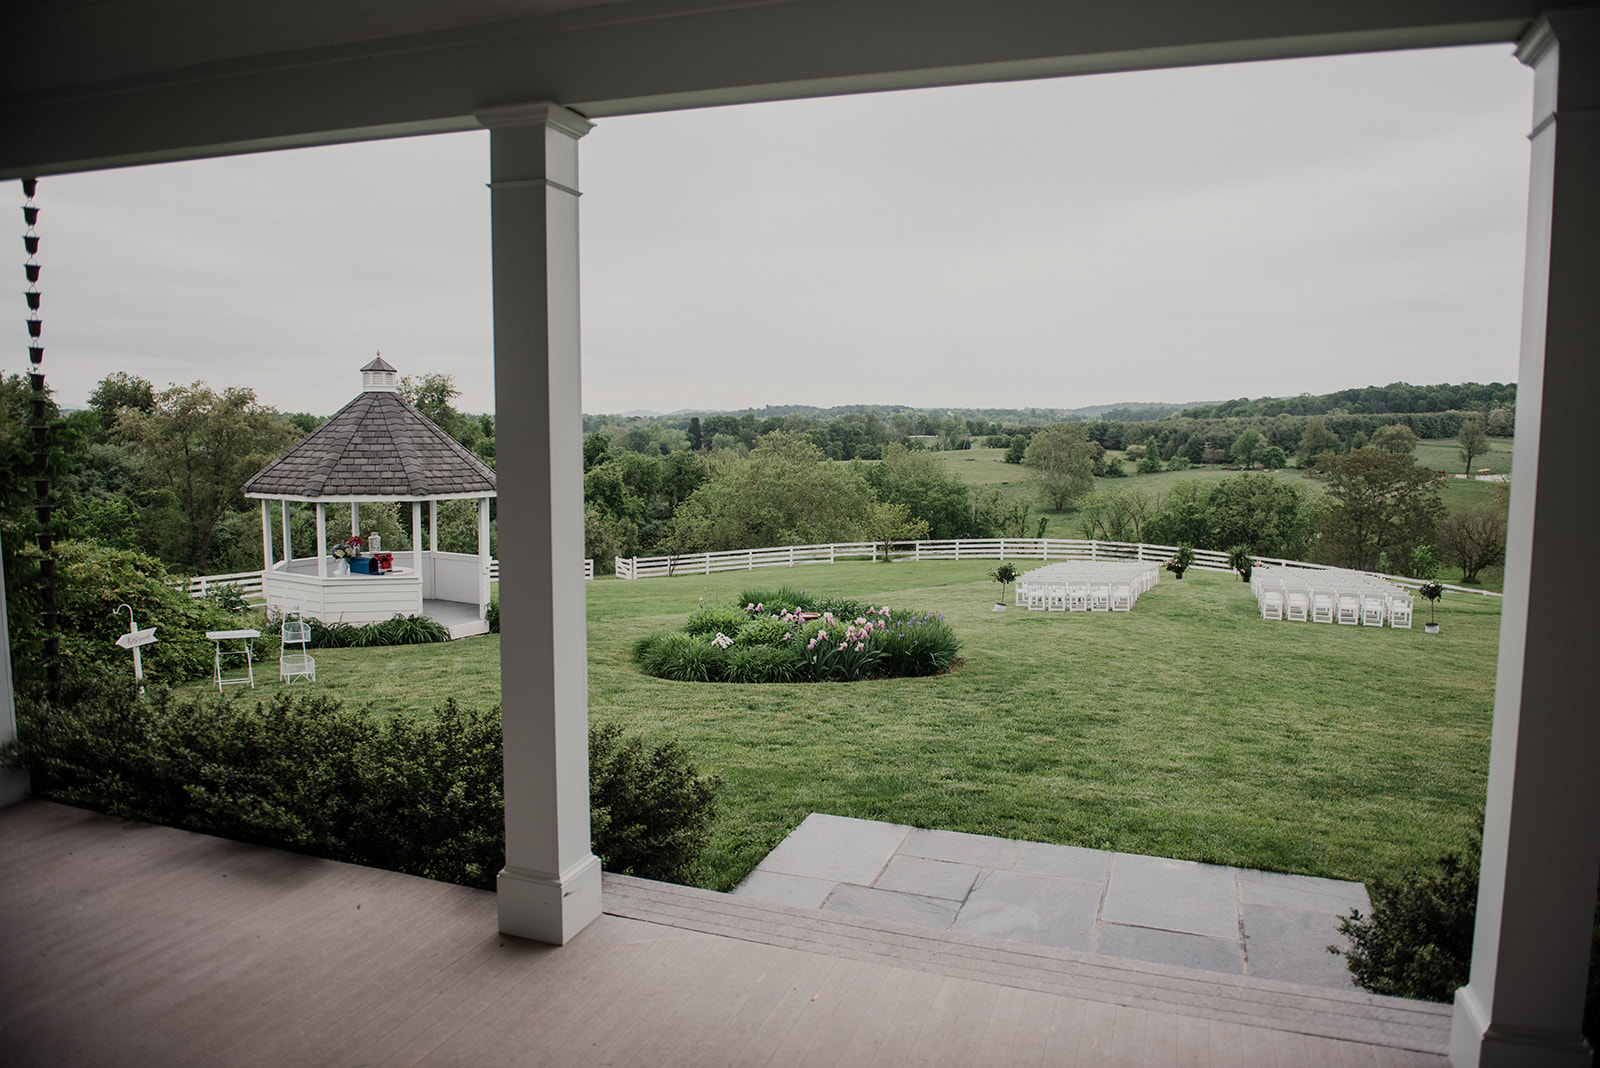 A view of the outdoor wedding ceremony site at Blue Hill Farm in Waterford, VA.